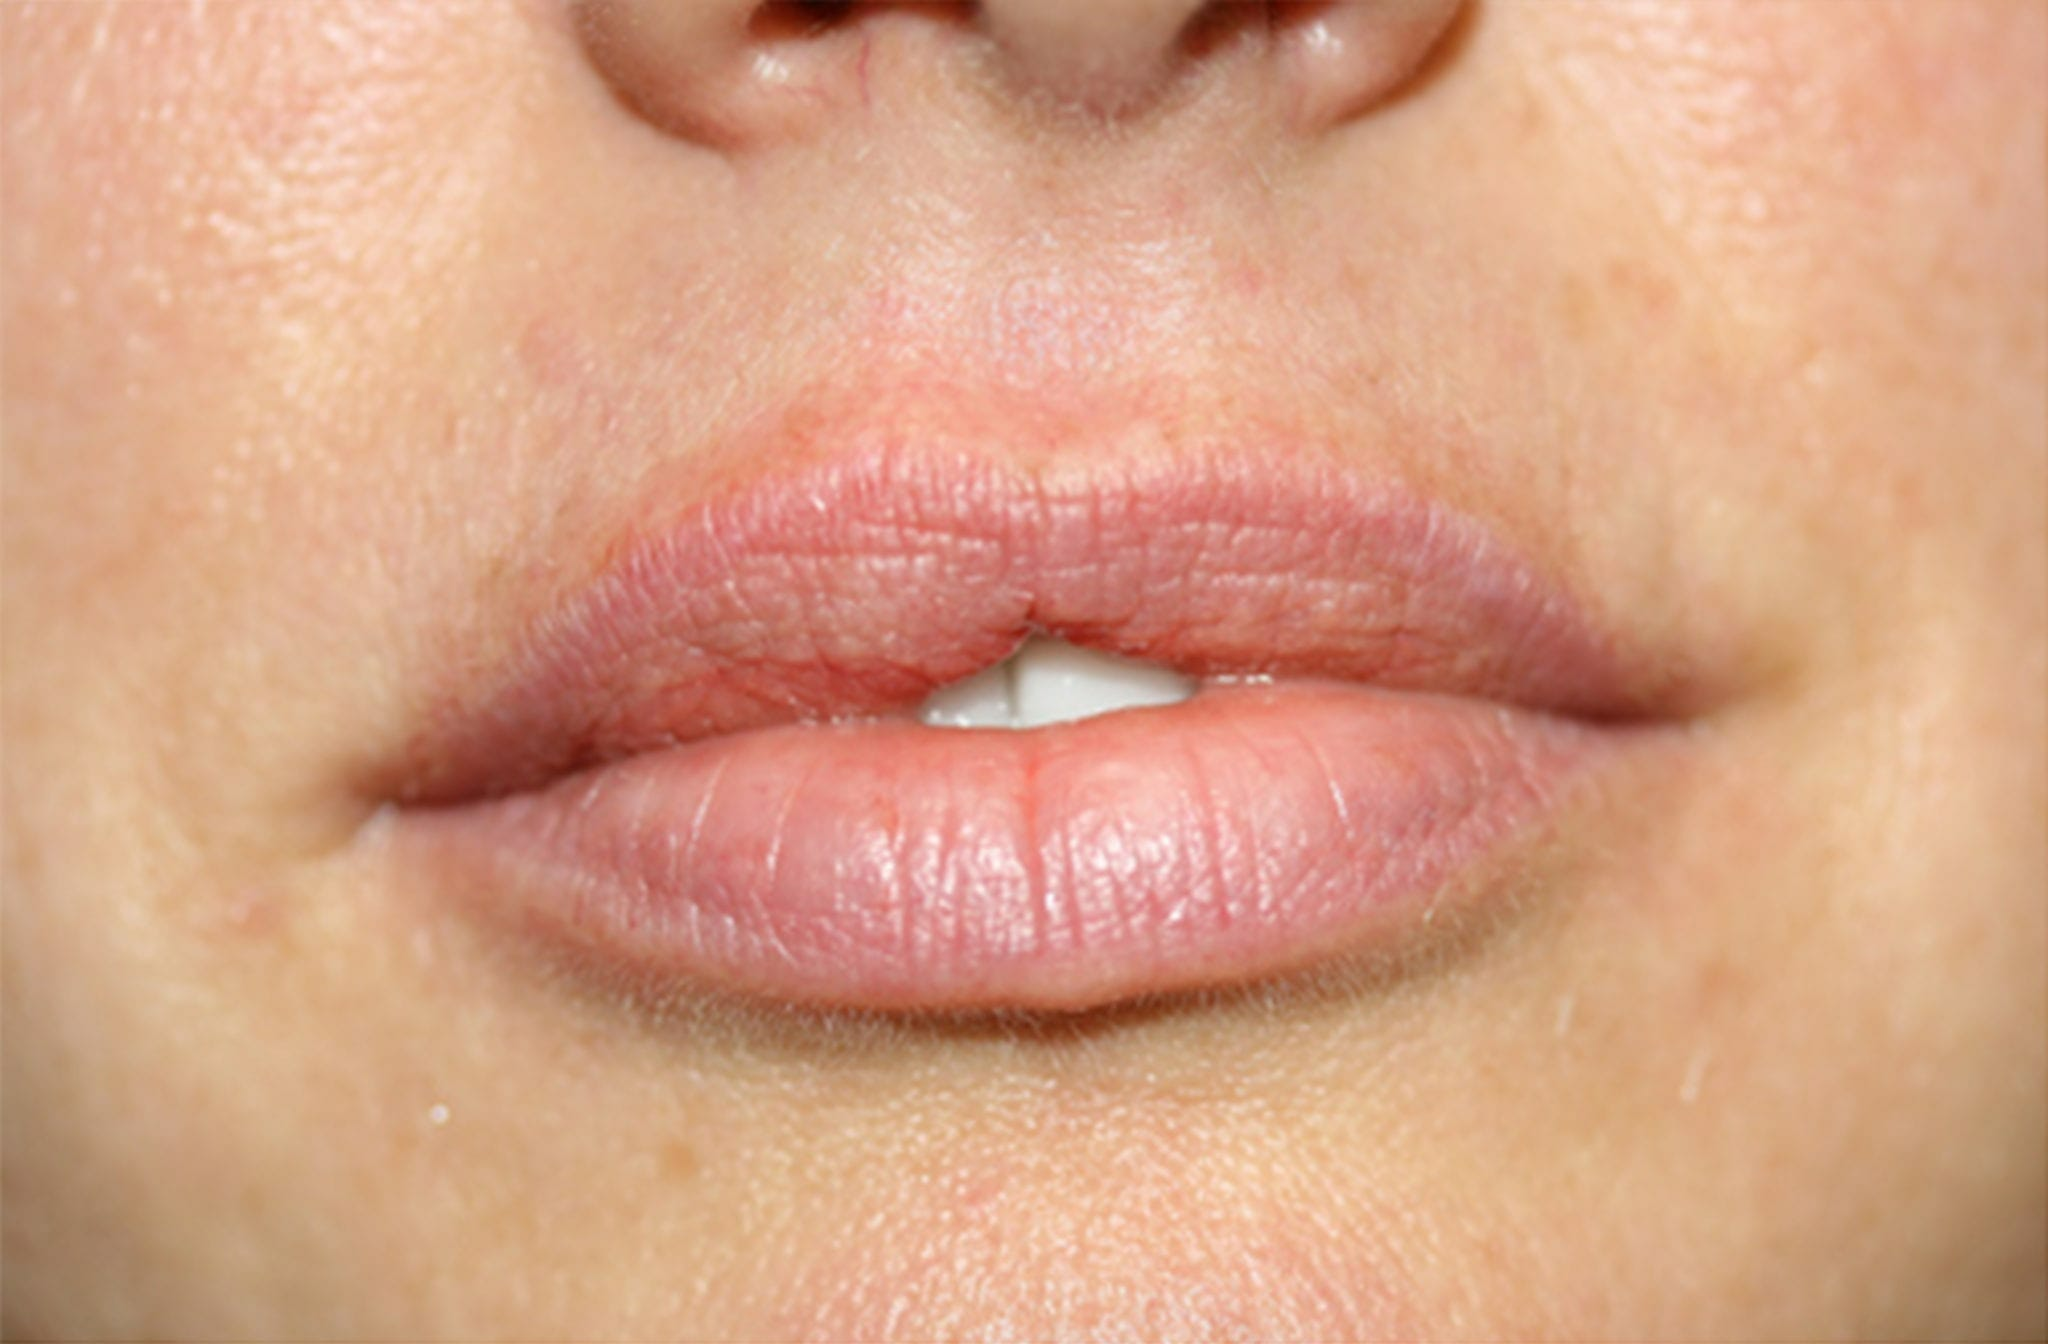 lip discoloration, permanent lipstick lip camouflage lip whitenening, dark lips pink lips permanent lips full lips beverly hills agoura hills medical micropigmentation permanent makeup